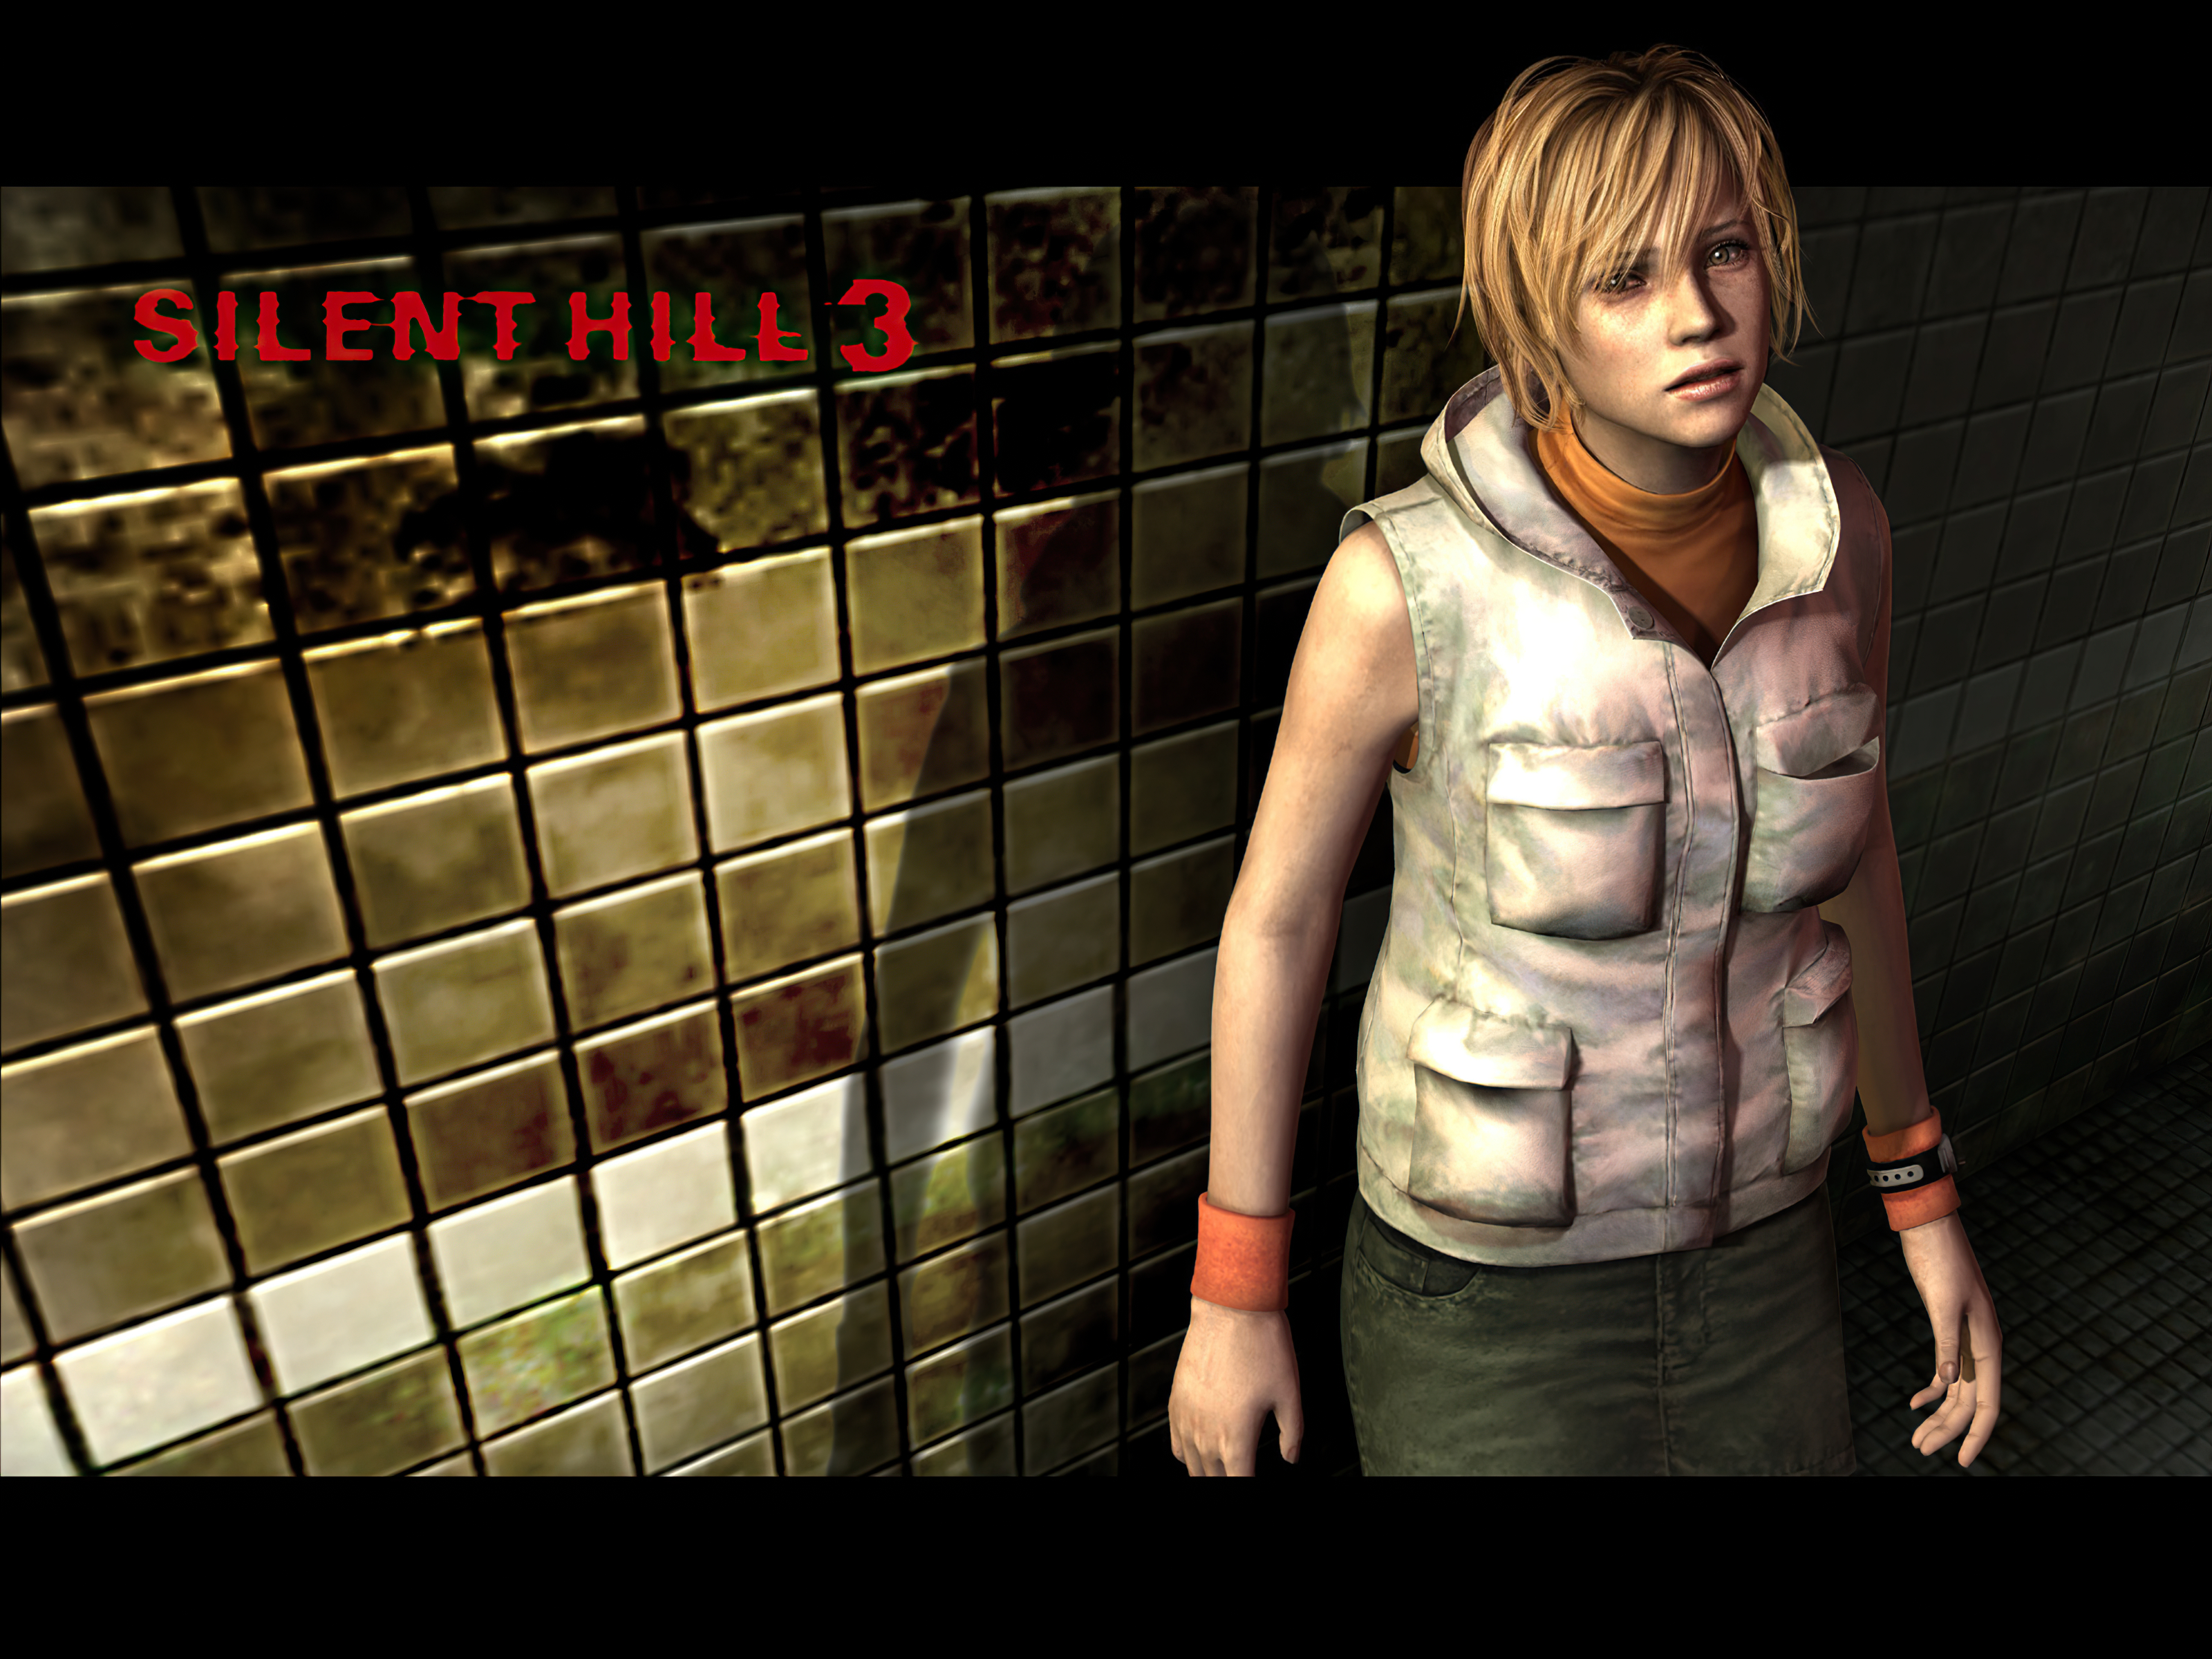 Silent Hill 3 Wallpaper: Heather Mason Wallpaper And Background Image